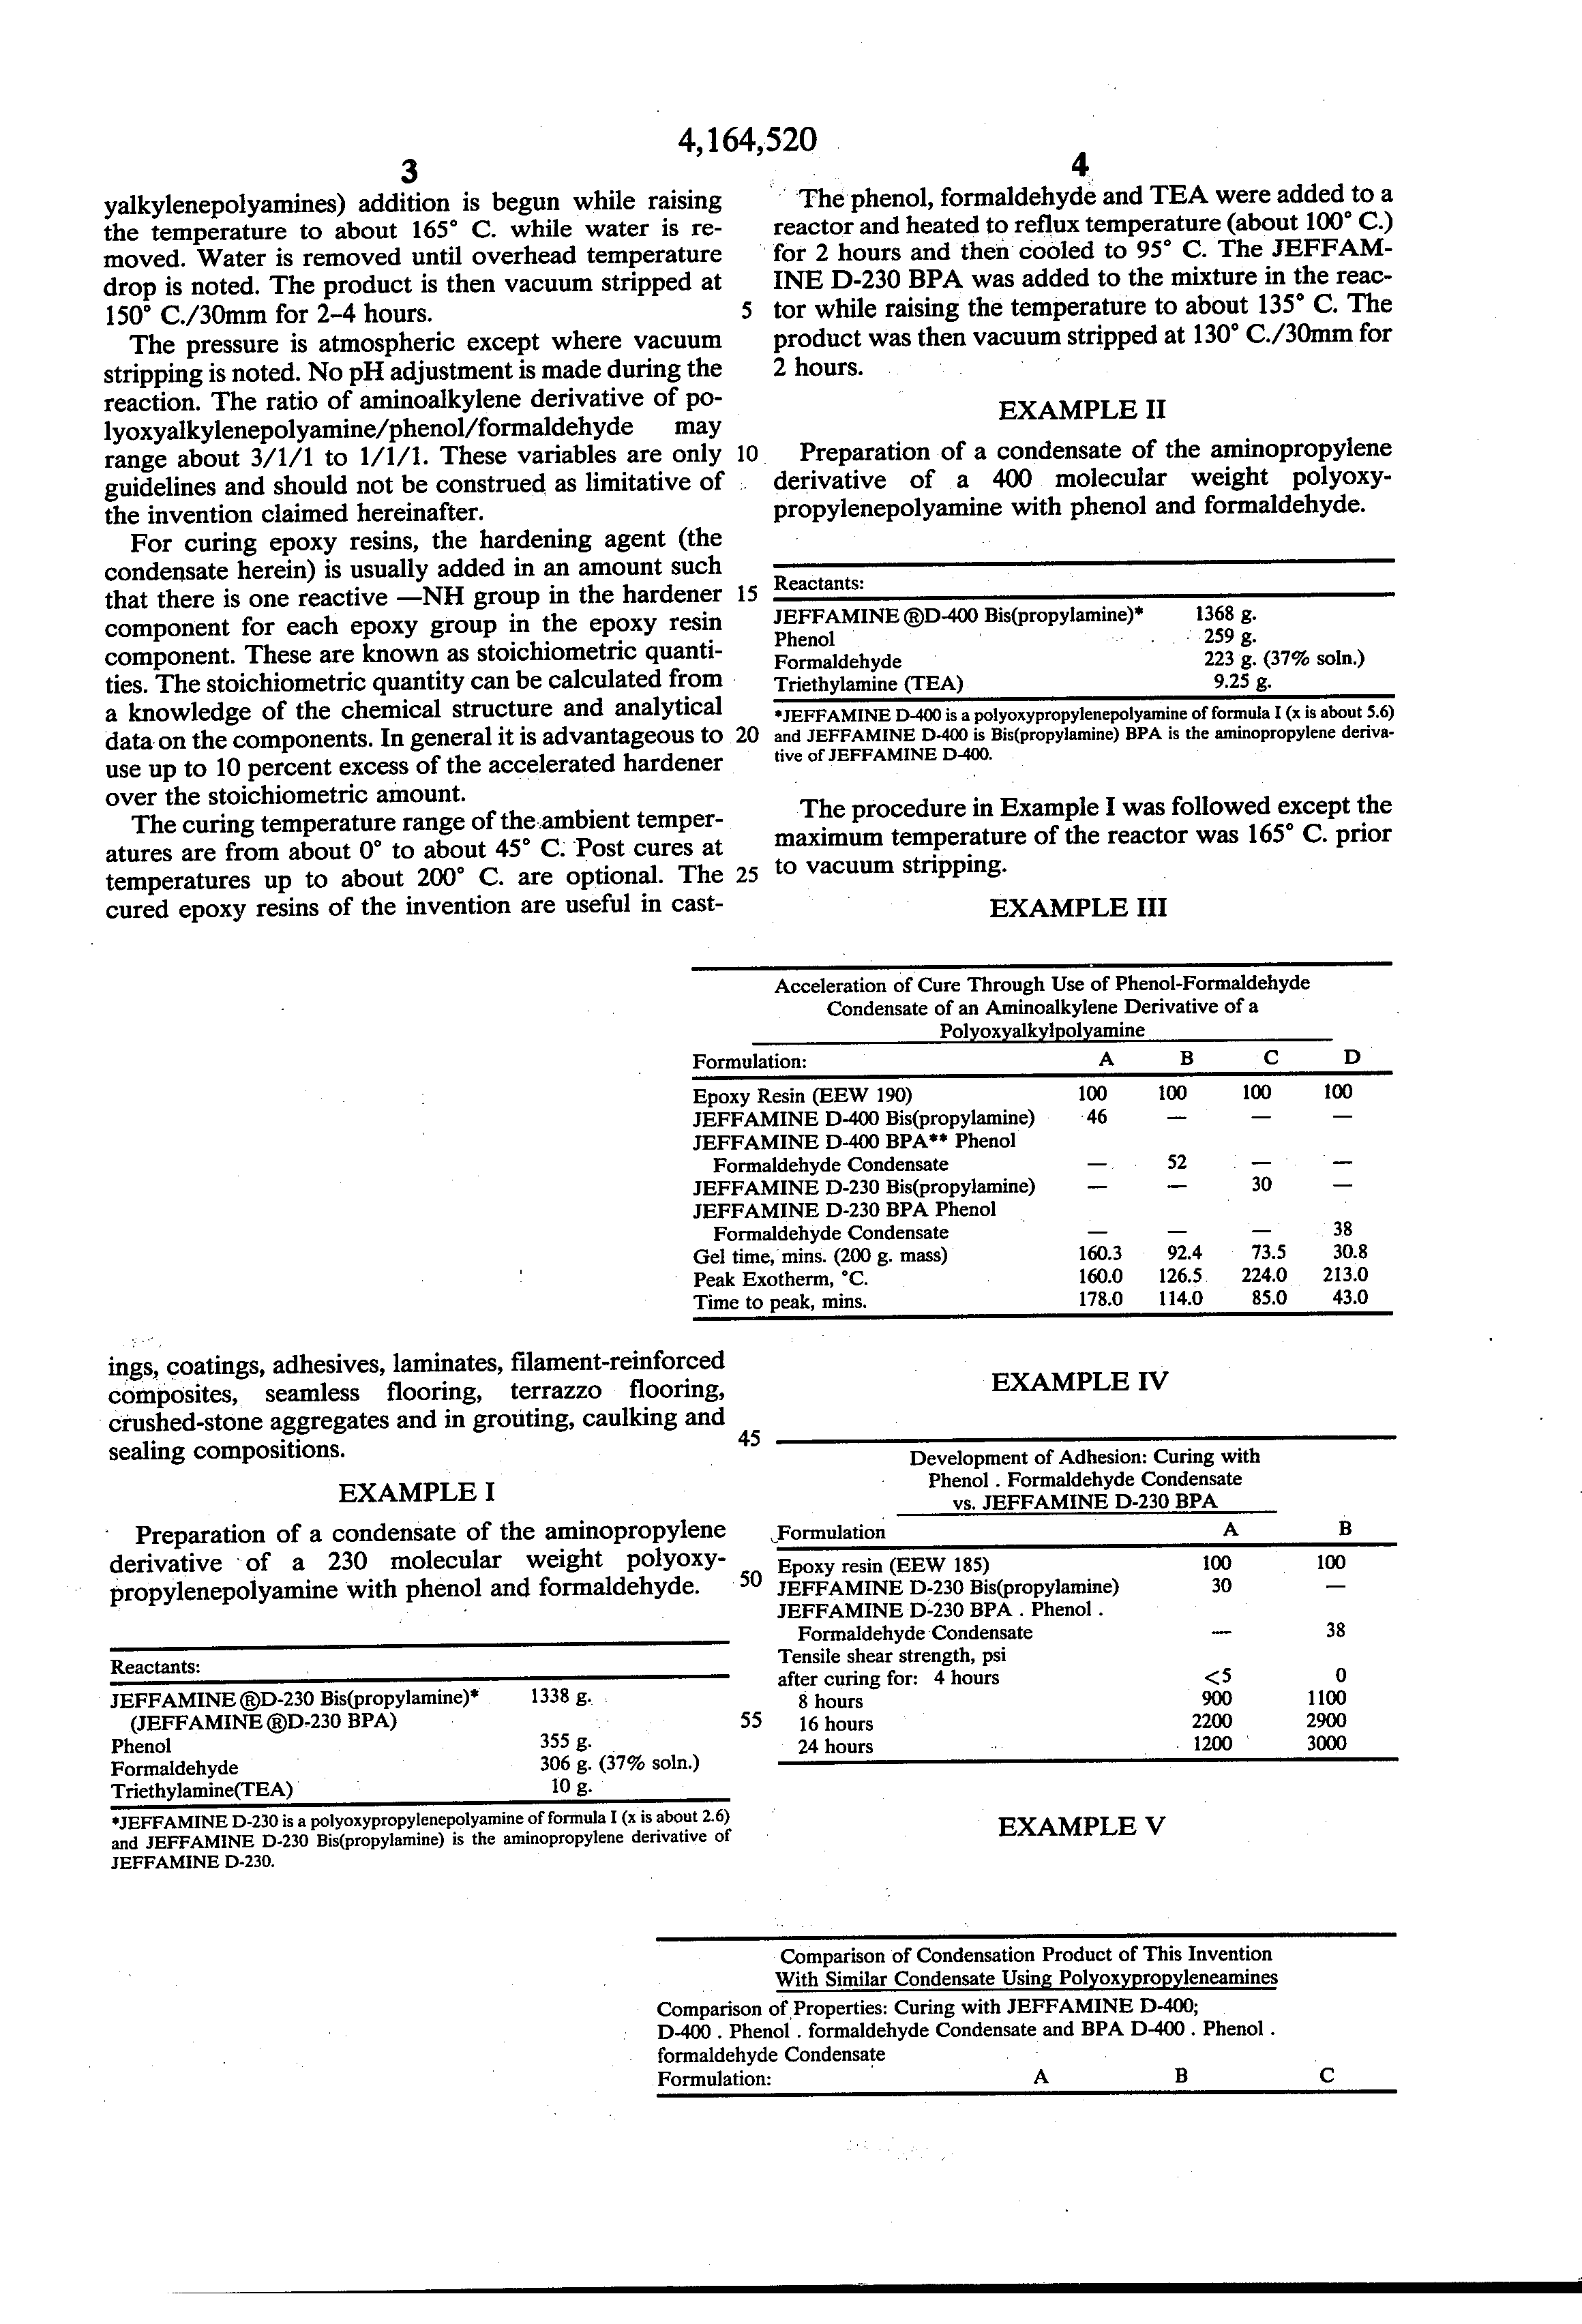 US 4164520 A - Accelerated Cure Of Epoxy Resins - The Lens